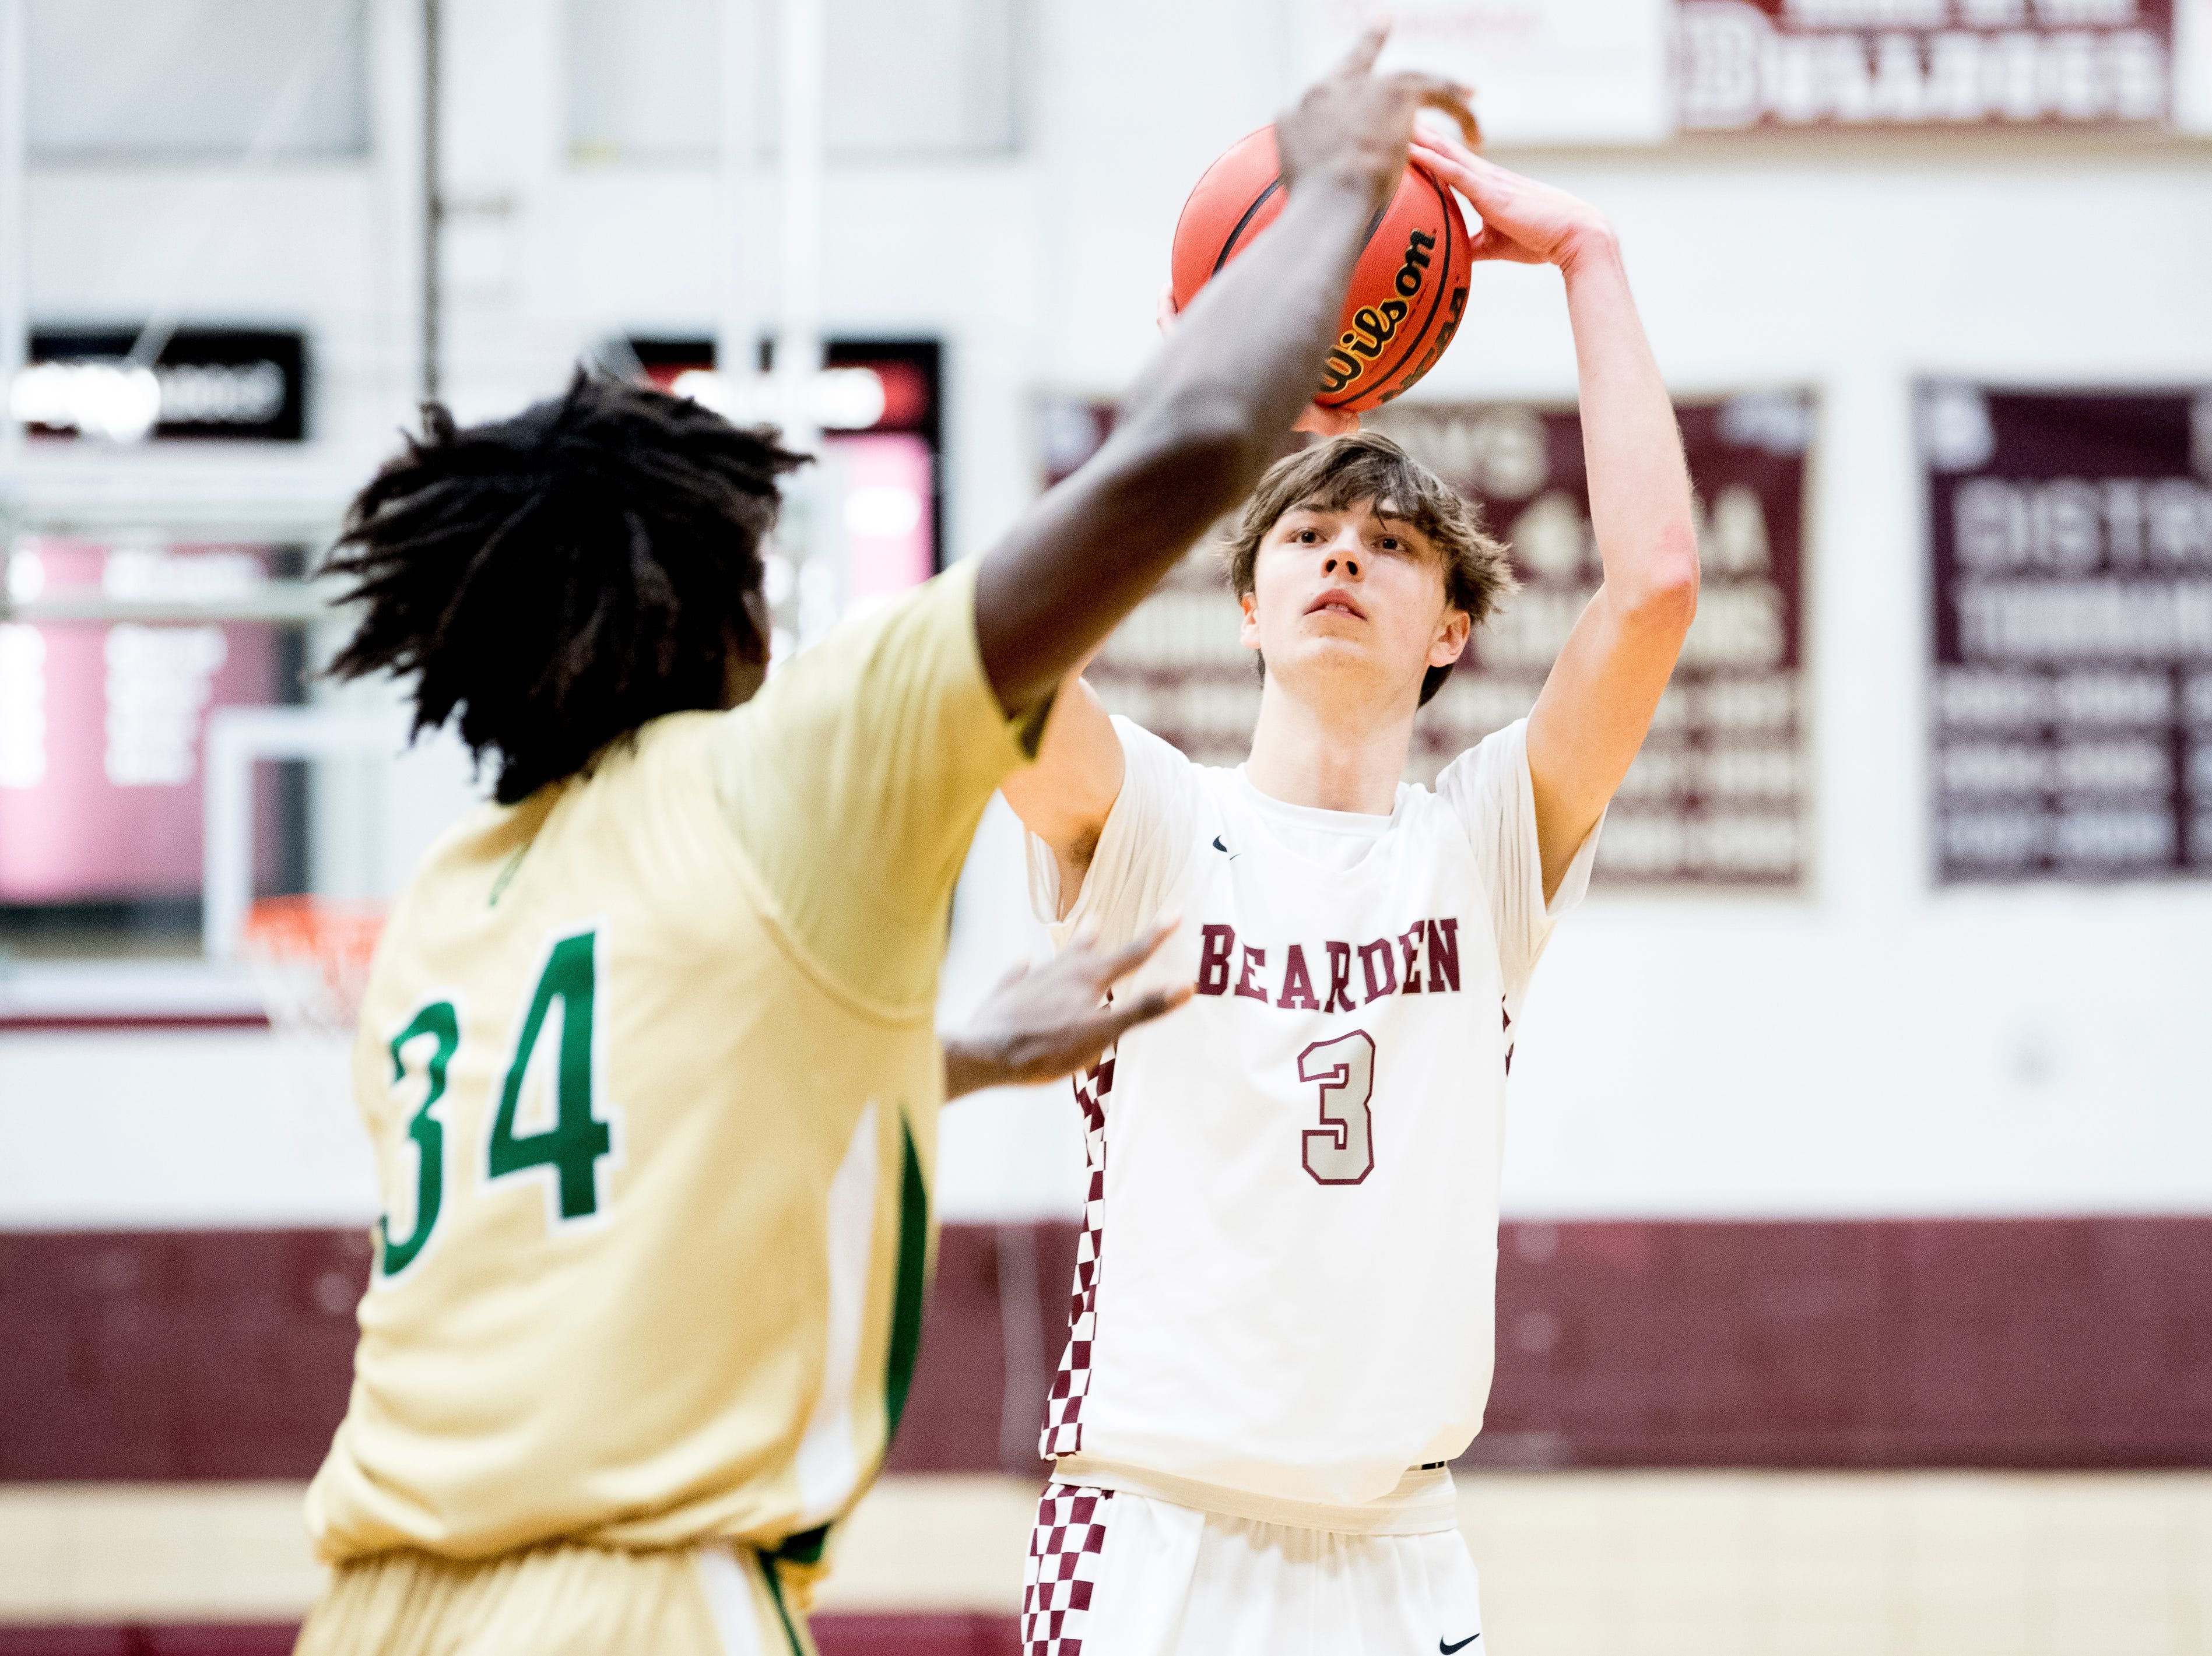 Bearden's Drew Pember (3) shoots the ball past Catholic's Akeem Odusipe (34) during a game between Bearden and Catholic at Bearden High School in Knoxville, Tennessee on Thursday, January 10, 2019.